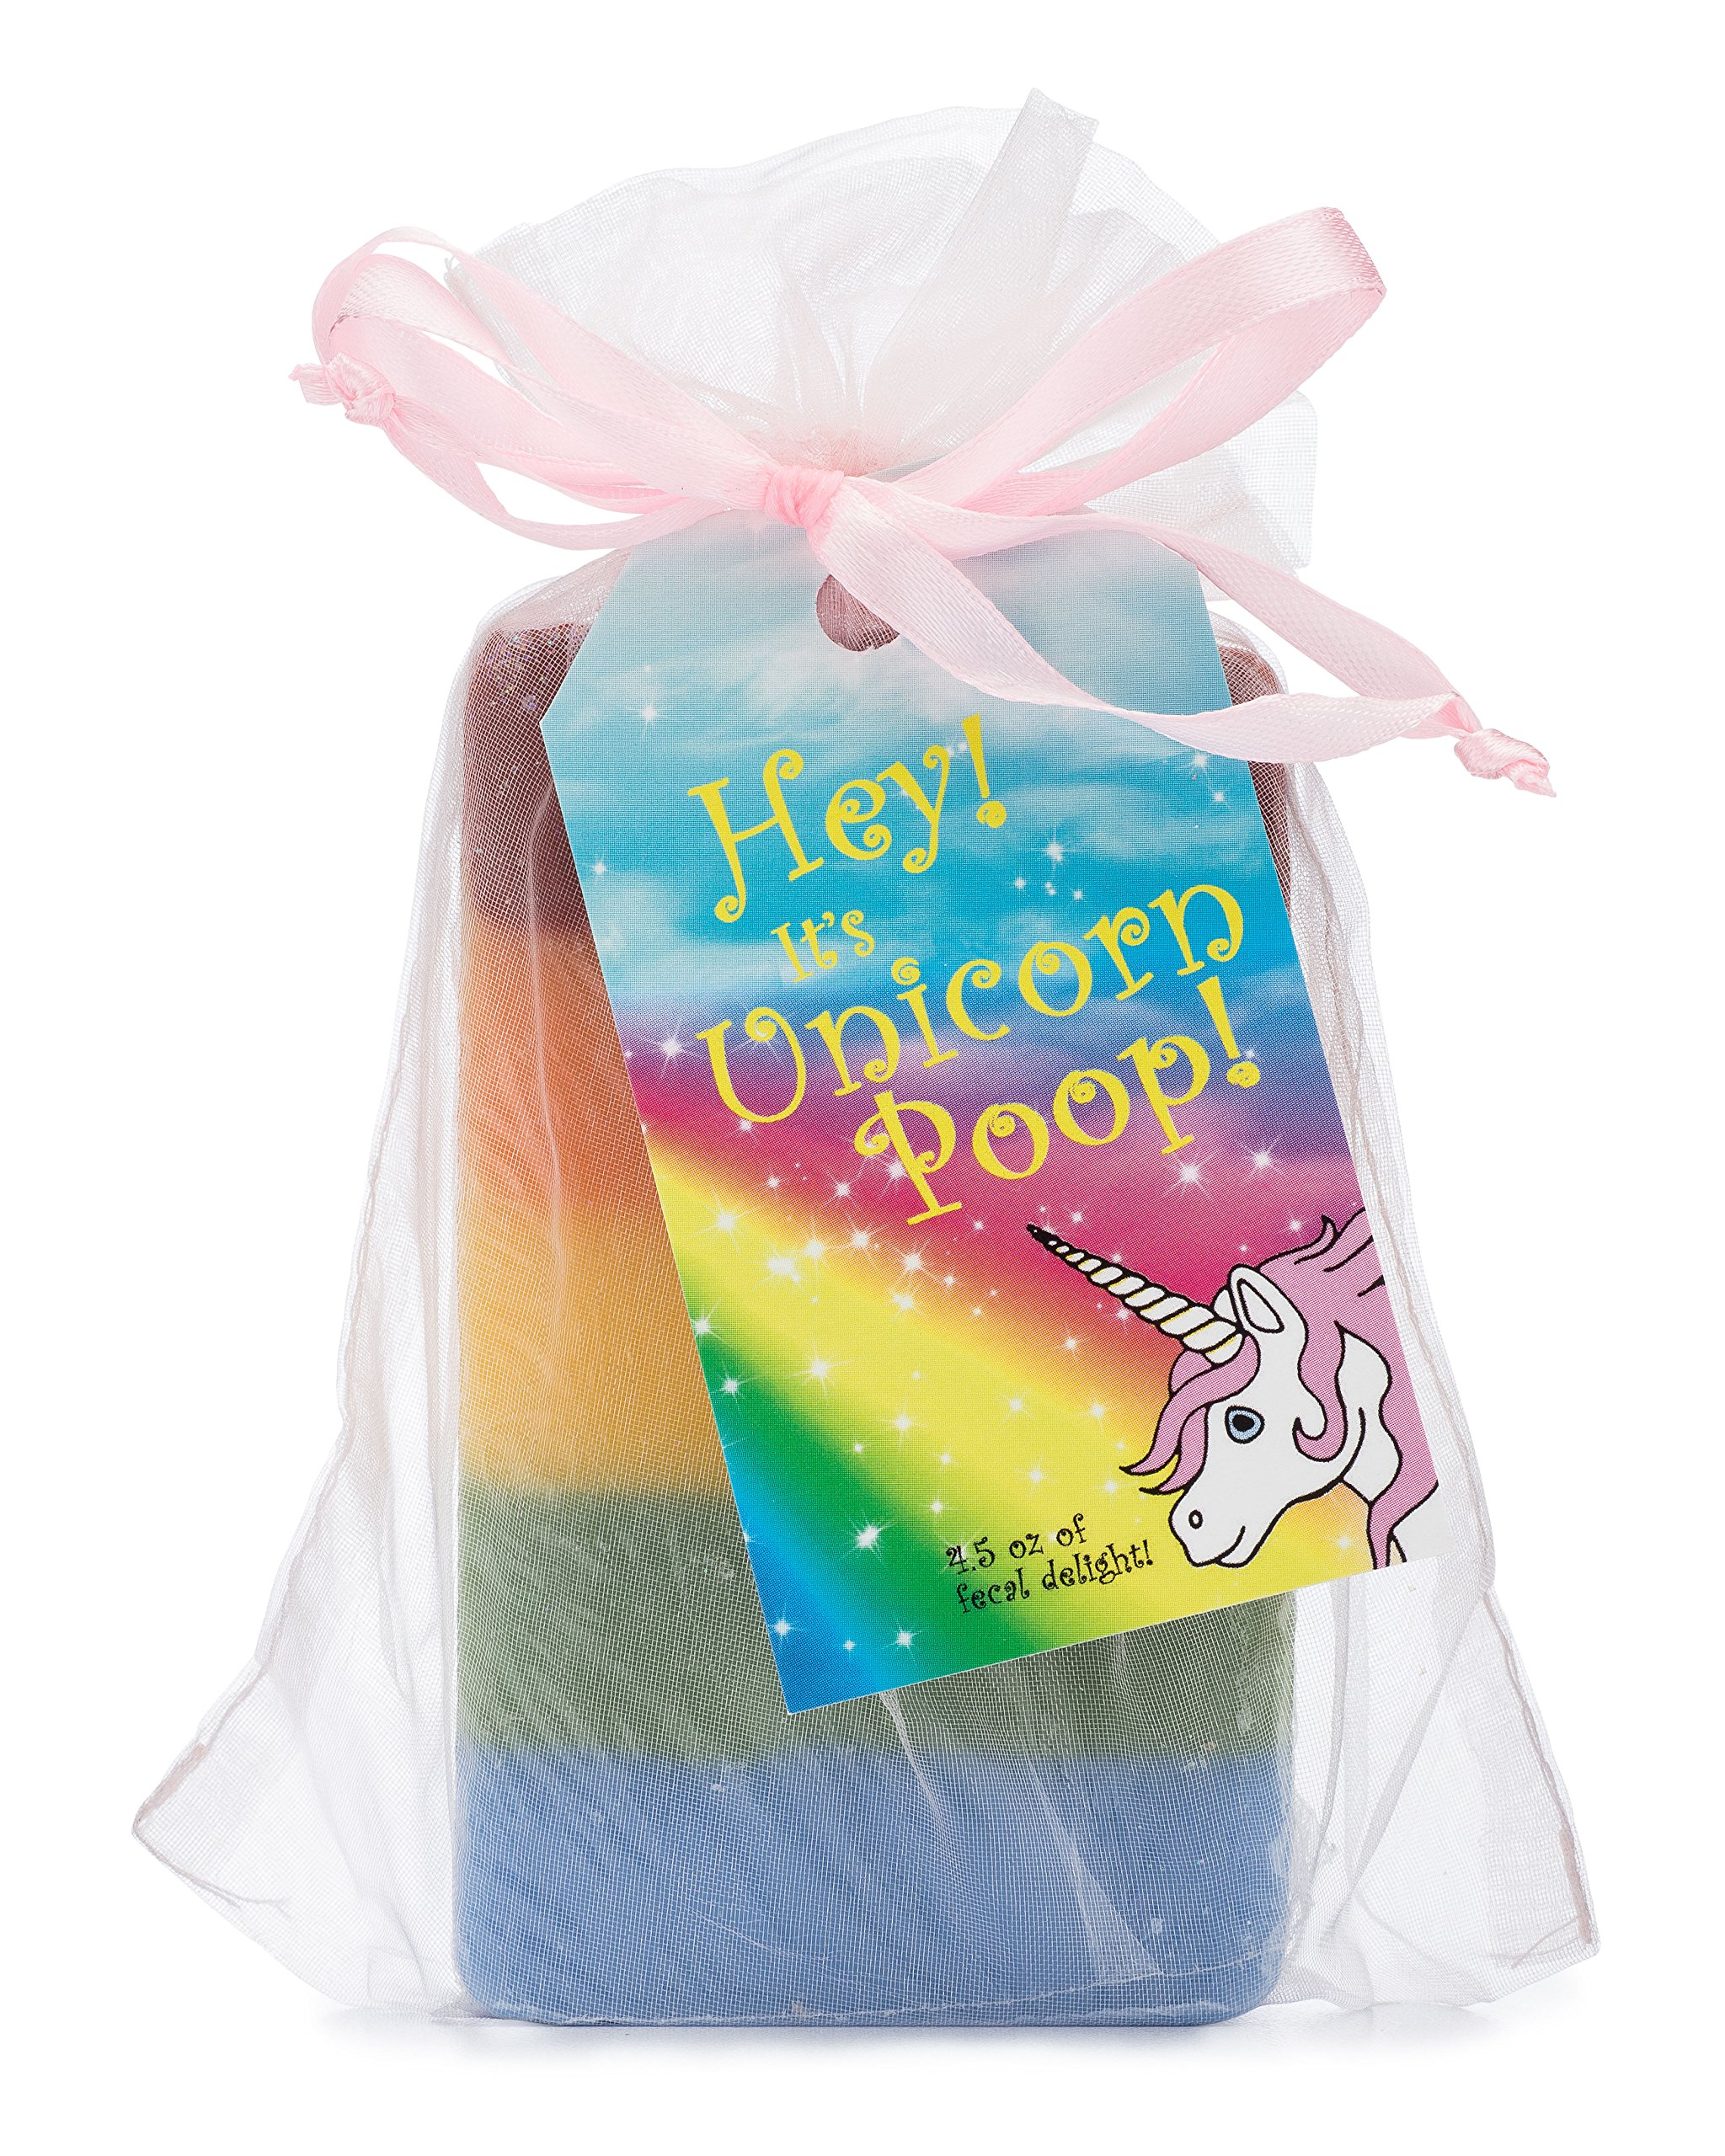 Outlaw Unicorn Poop Soap: a Magical, Sparkly, Unique Unicorn Gift for the Unicorn-lover in your Life (1 Bar of Handmade… 3